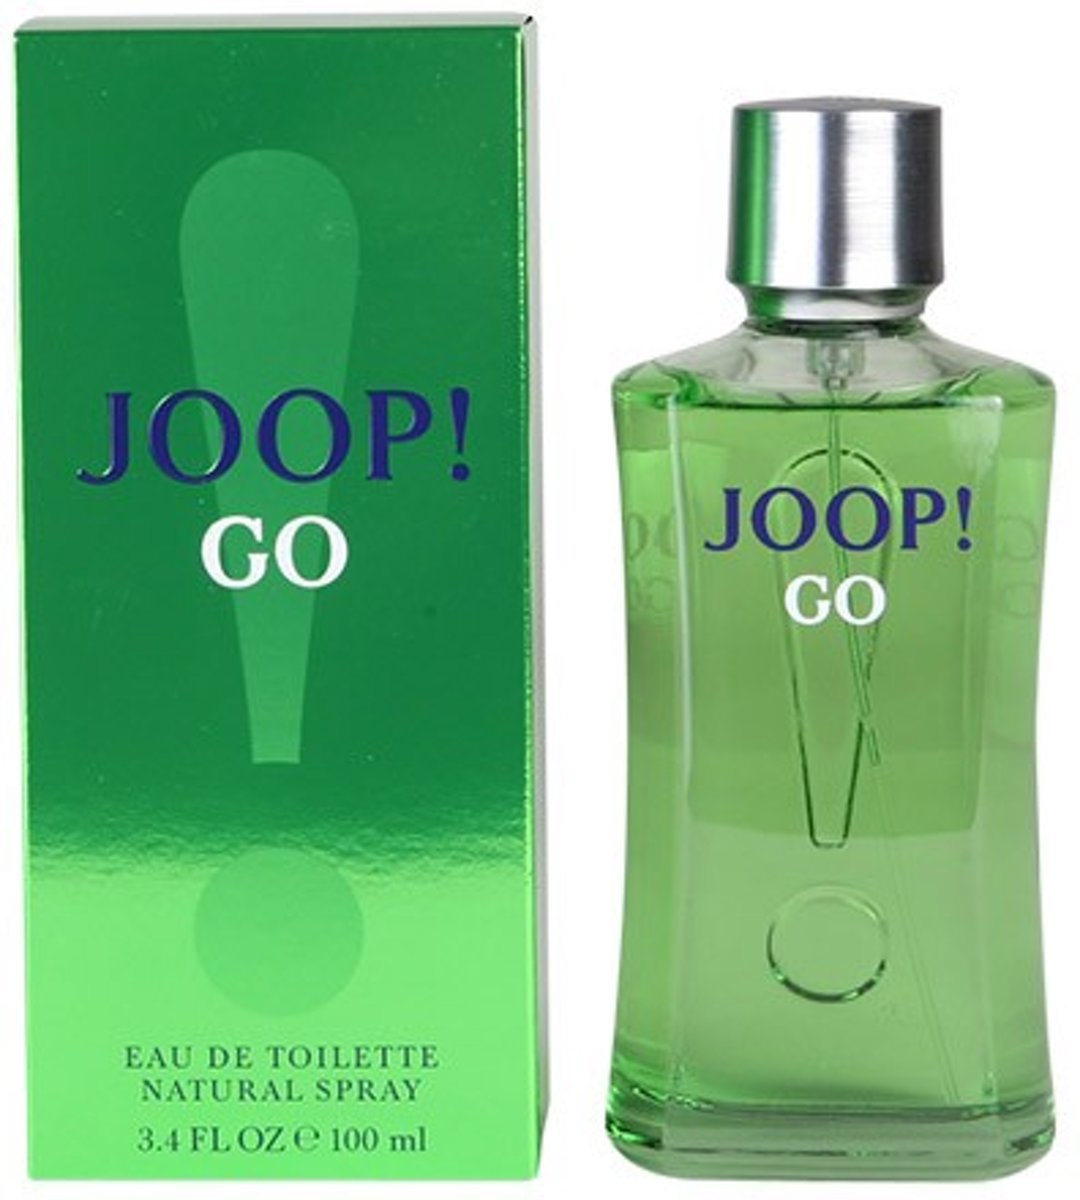 MULTI BUNDEL 2 stuks JOOP GO eau de toilette spray 100 ml